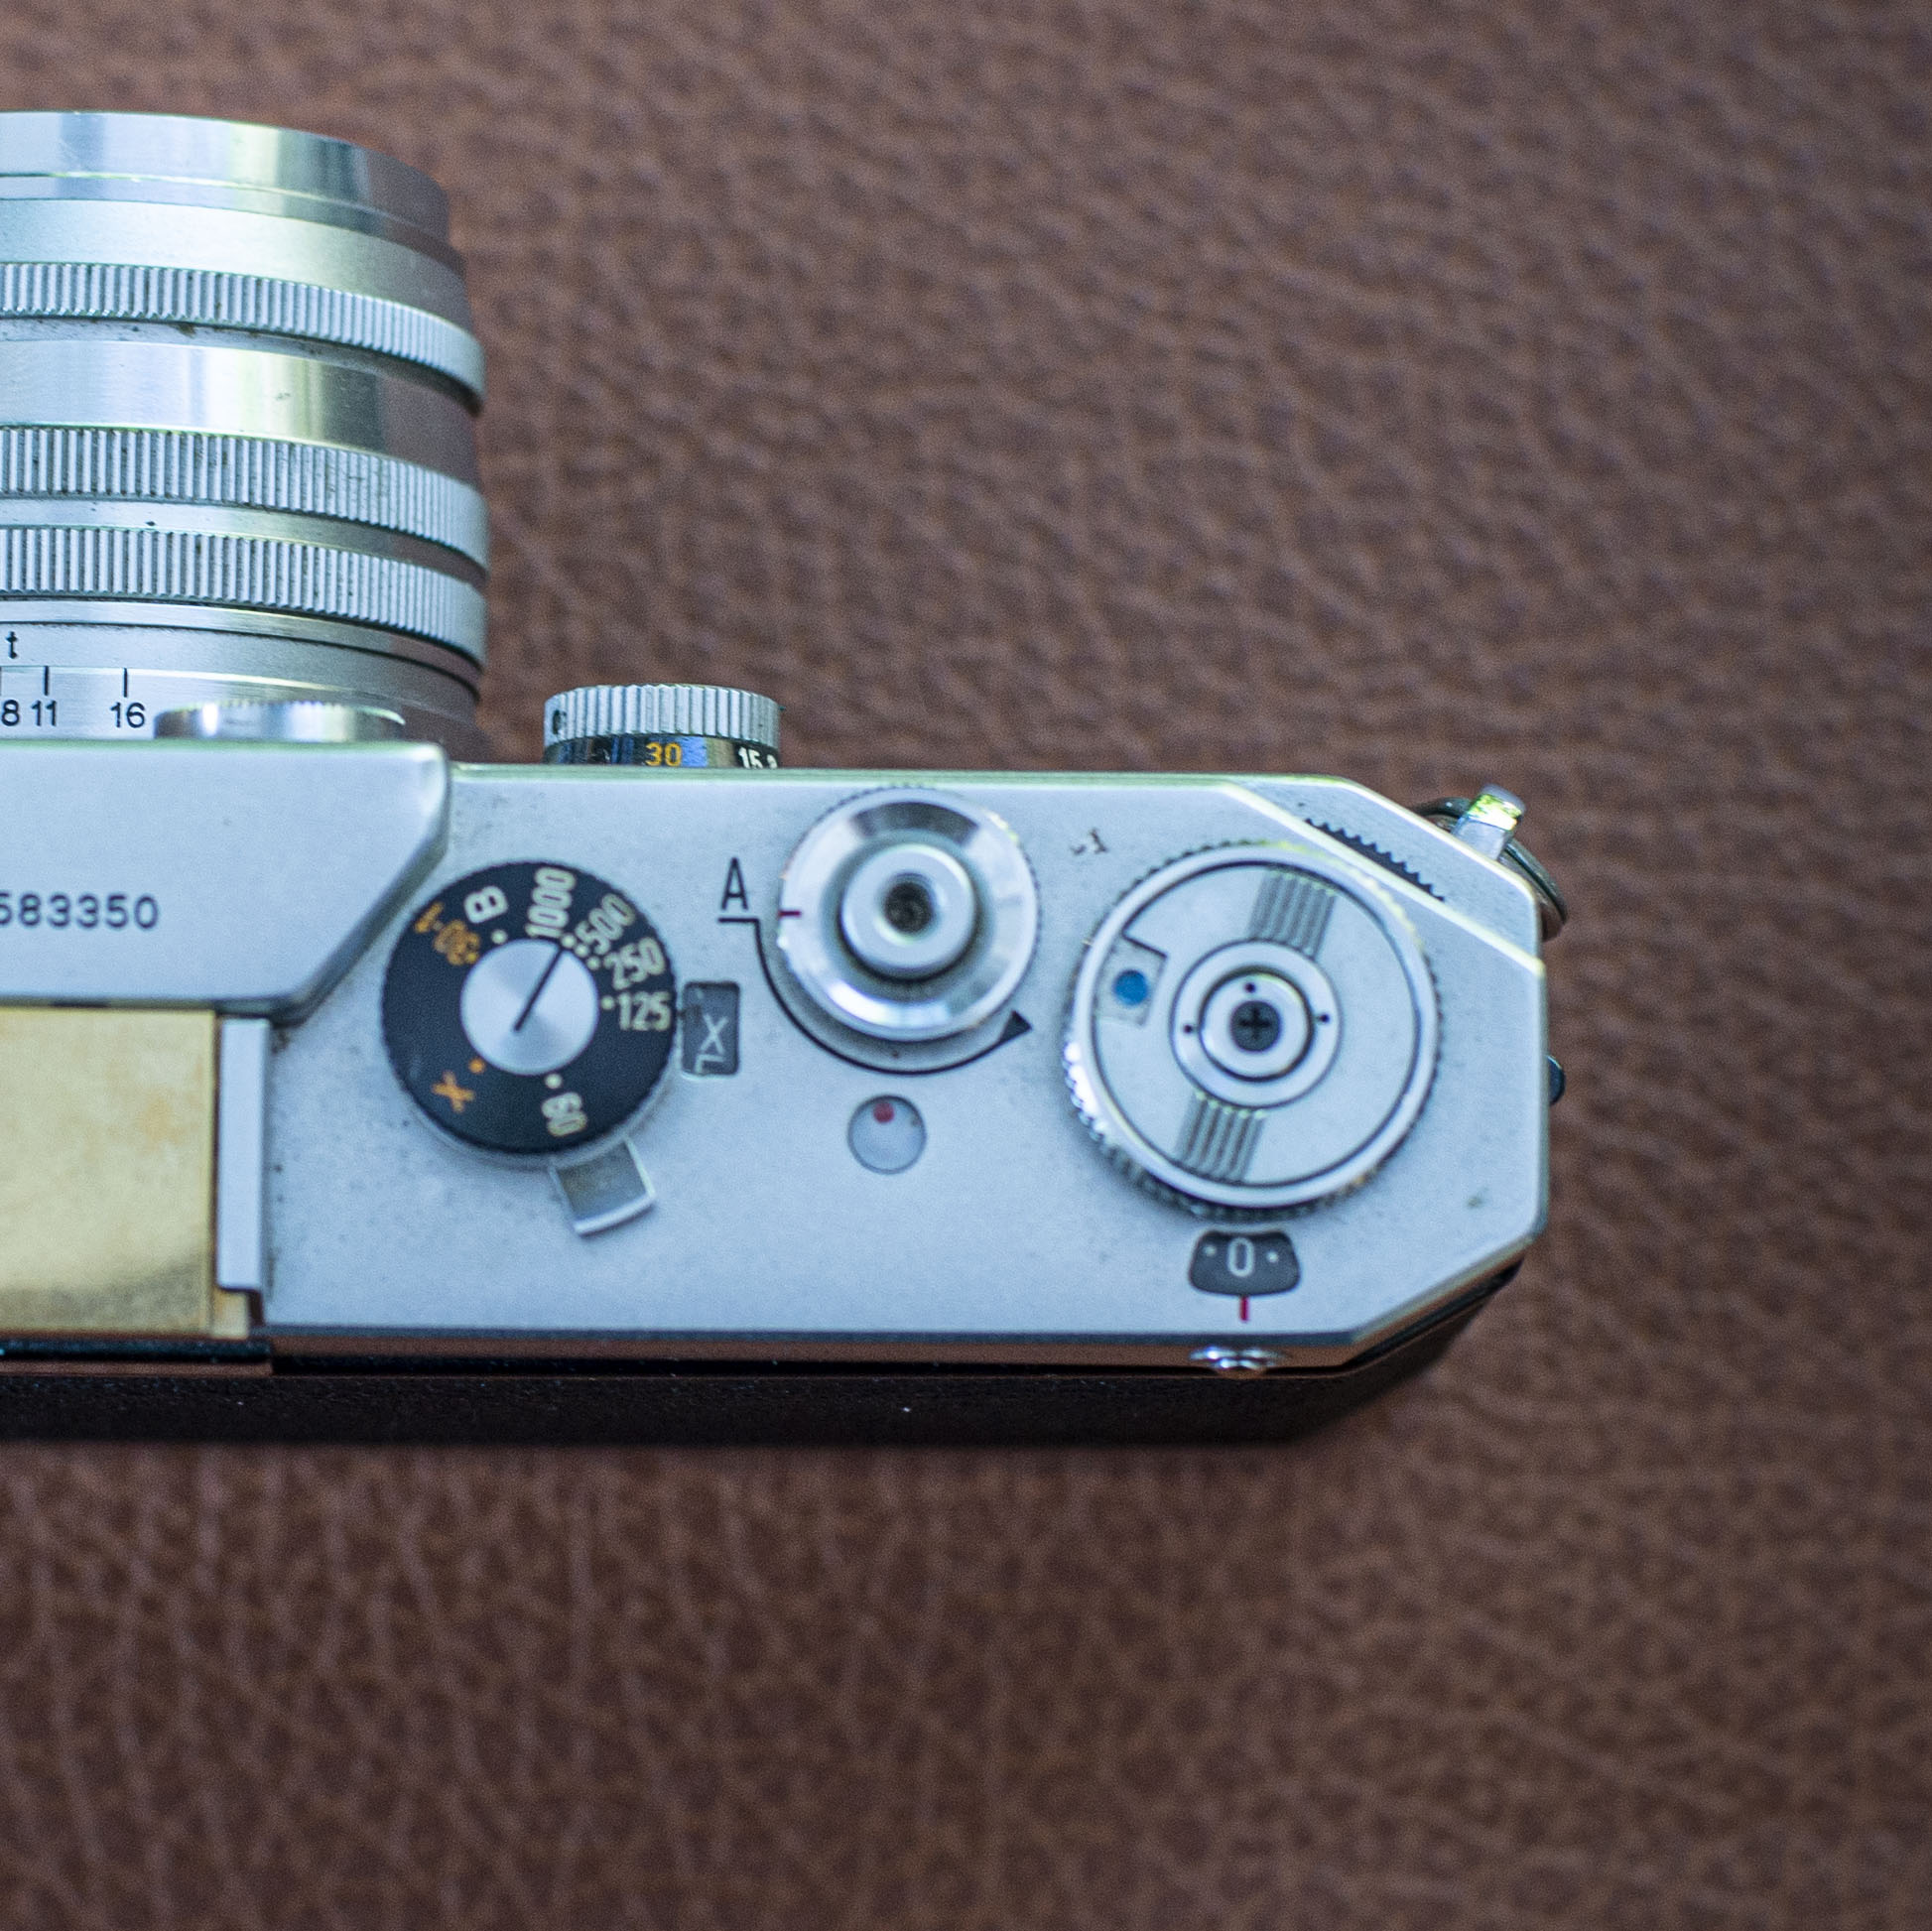 camera shutter release and control dials